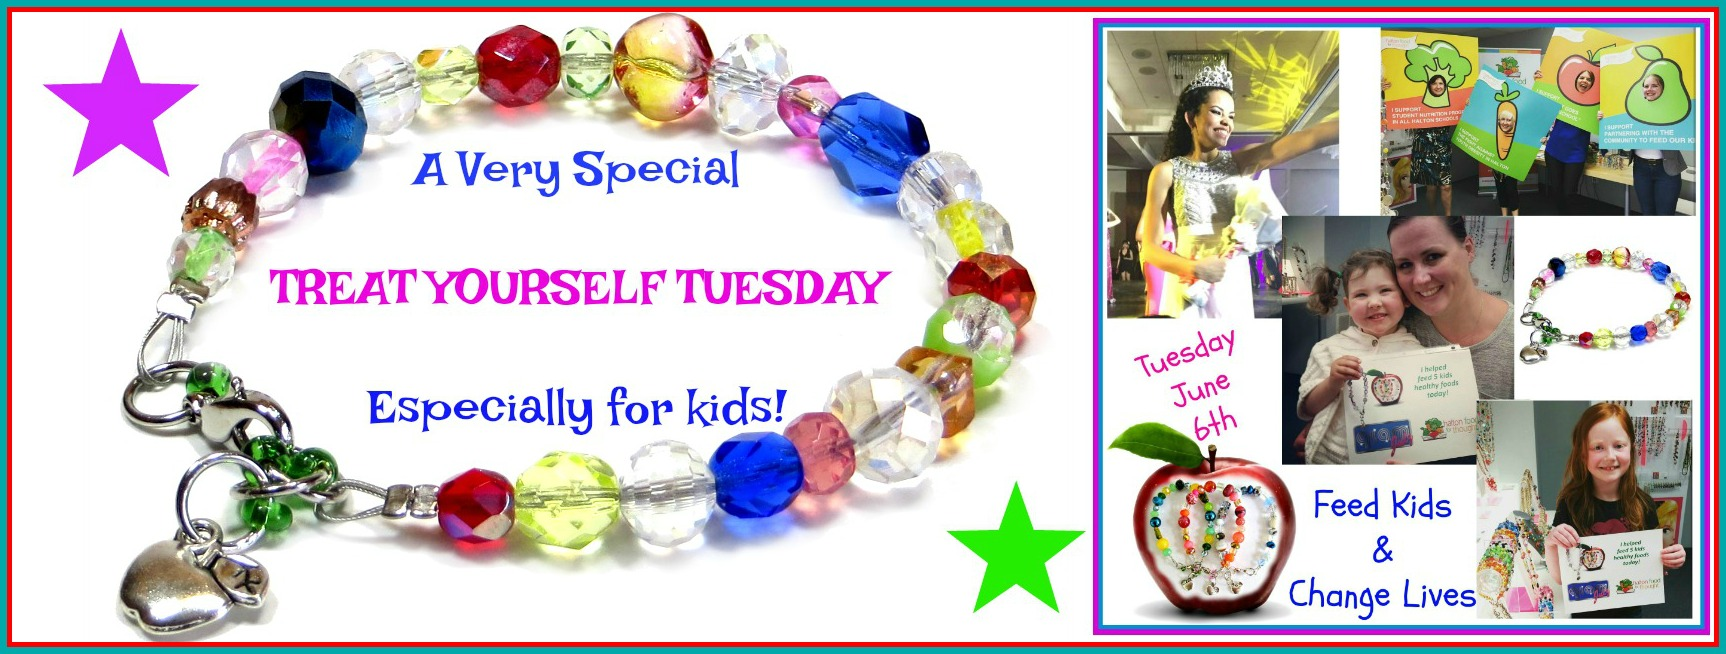 Treat Yourself Tuesday for Kids!